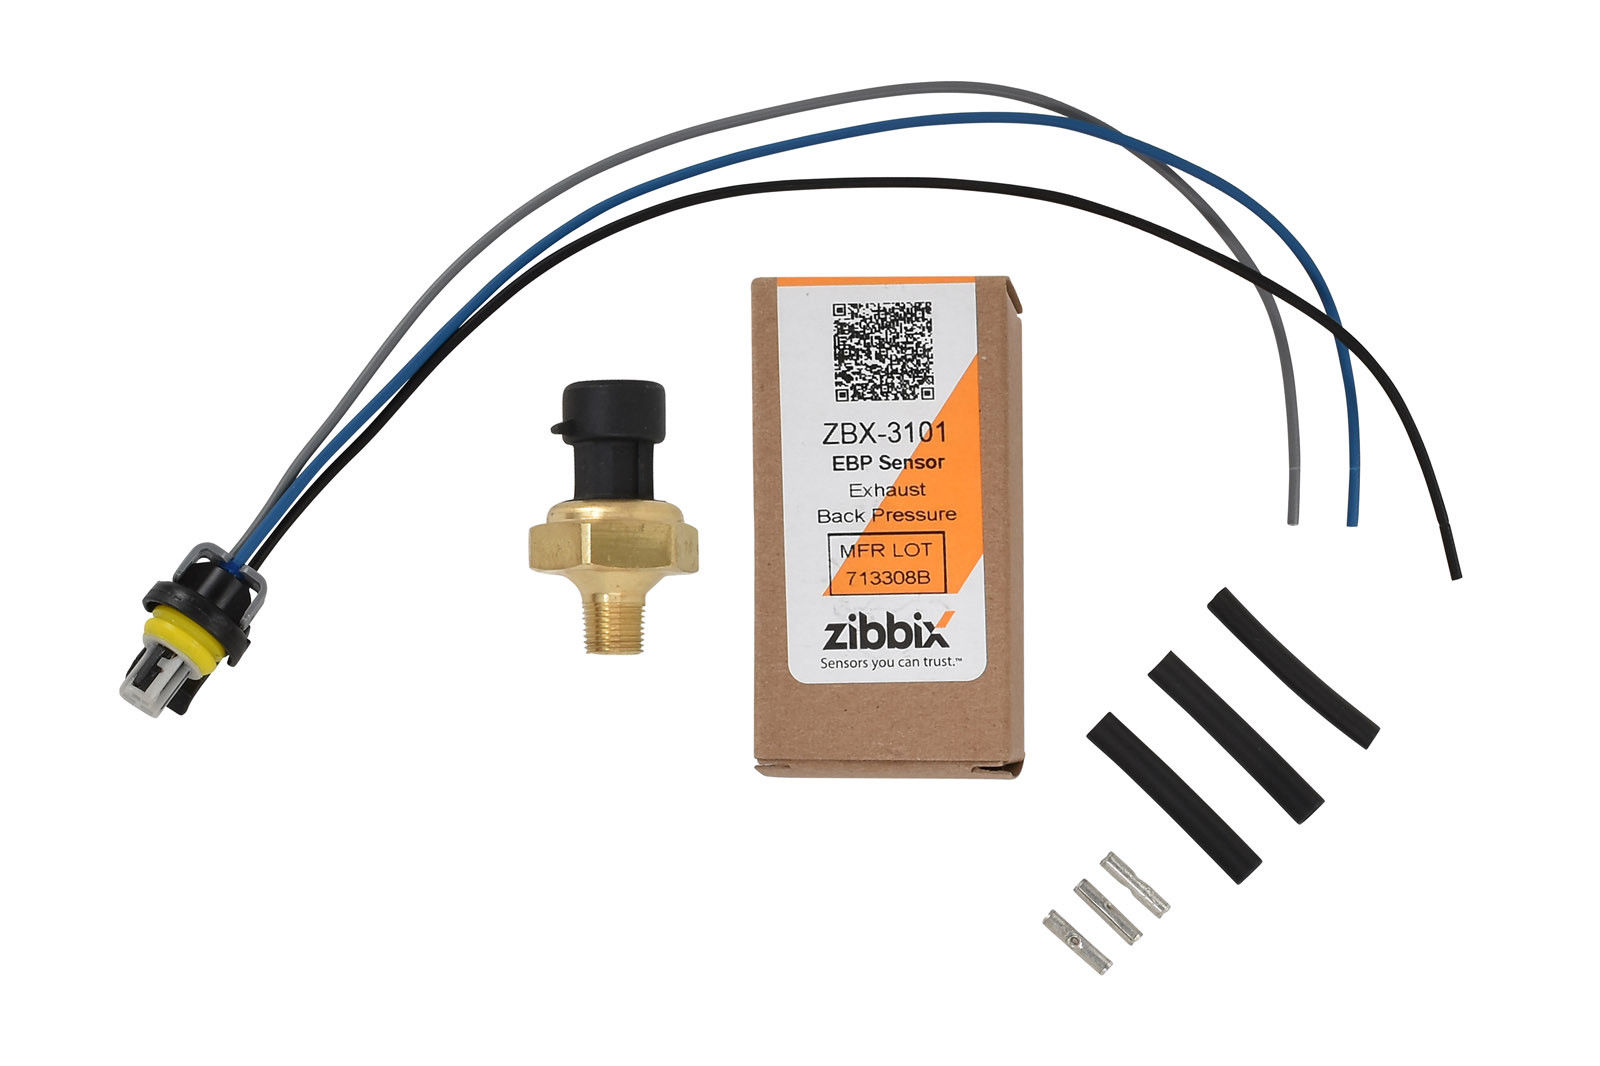 Zibbix ZBX-3101-PK4 EBP Exhaust Back Pressure Sensor Pigtail Kit For 94-04 7.3L 6.0L Ford Powerstroke Diesel